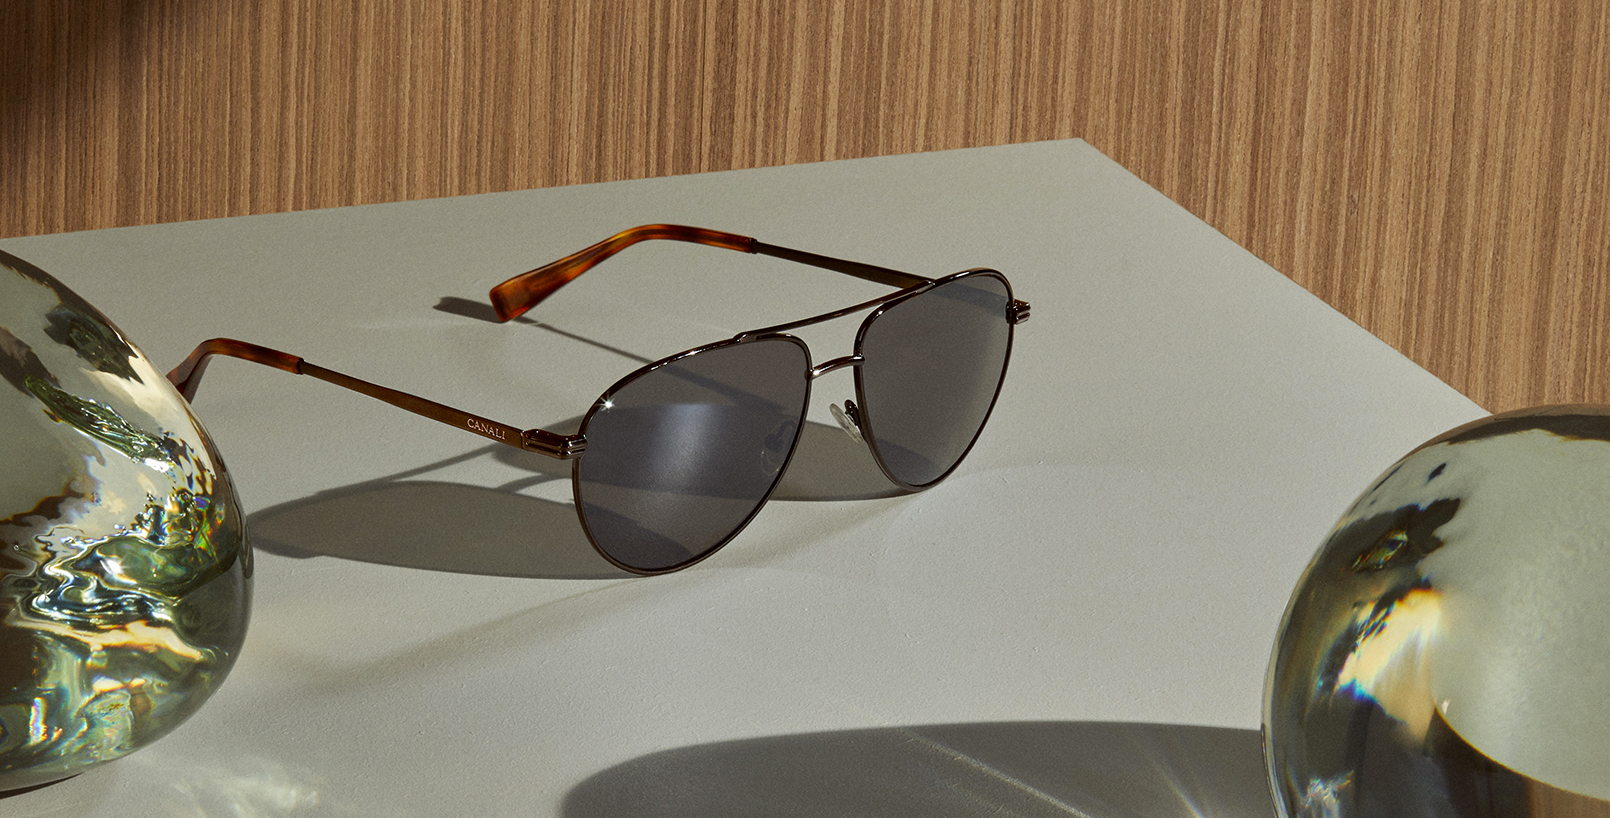 Canali Eyewear Collection: elegance at first sight